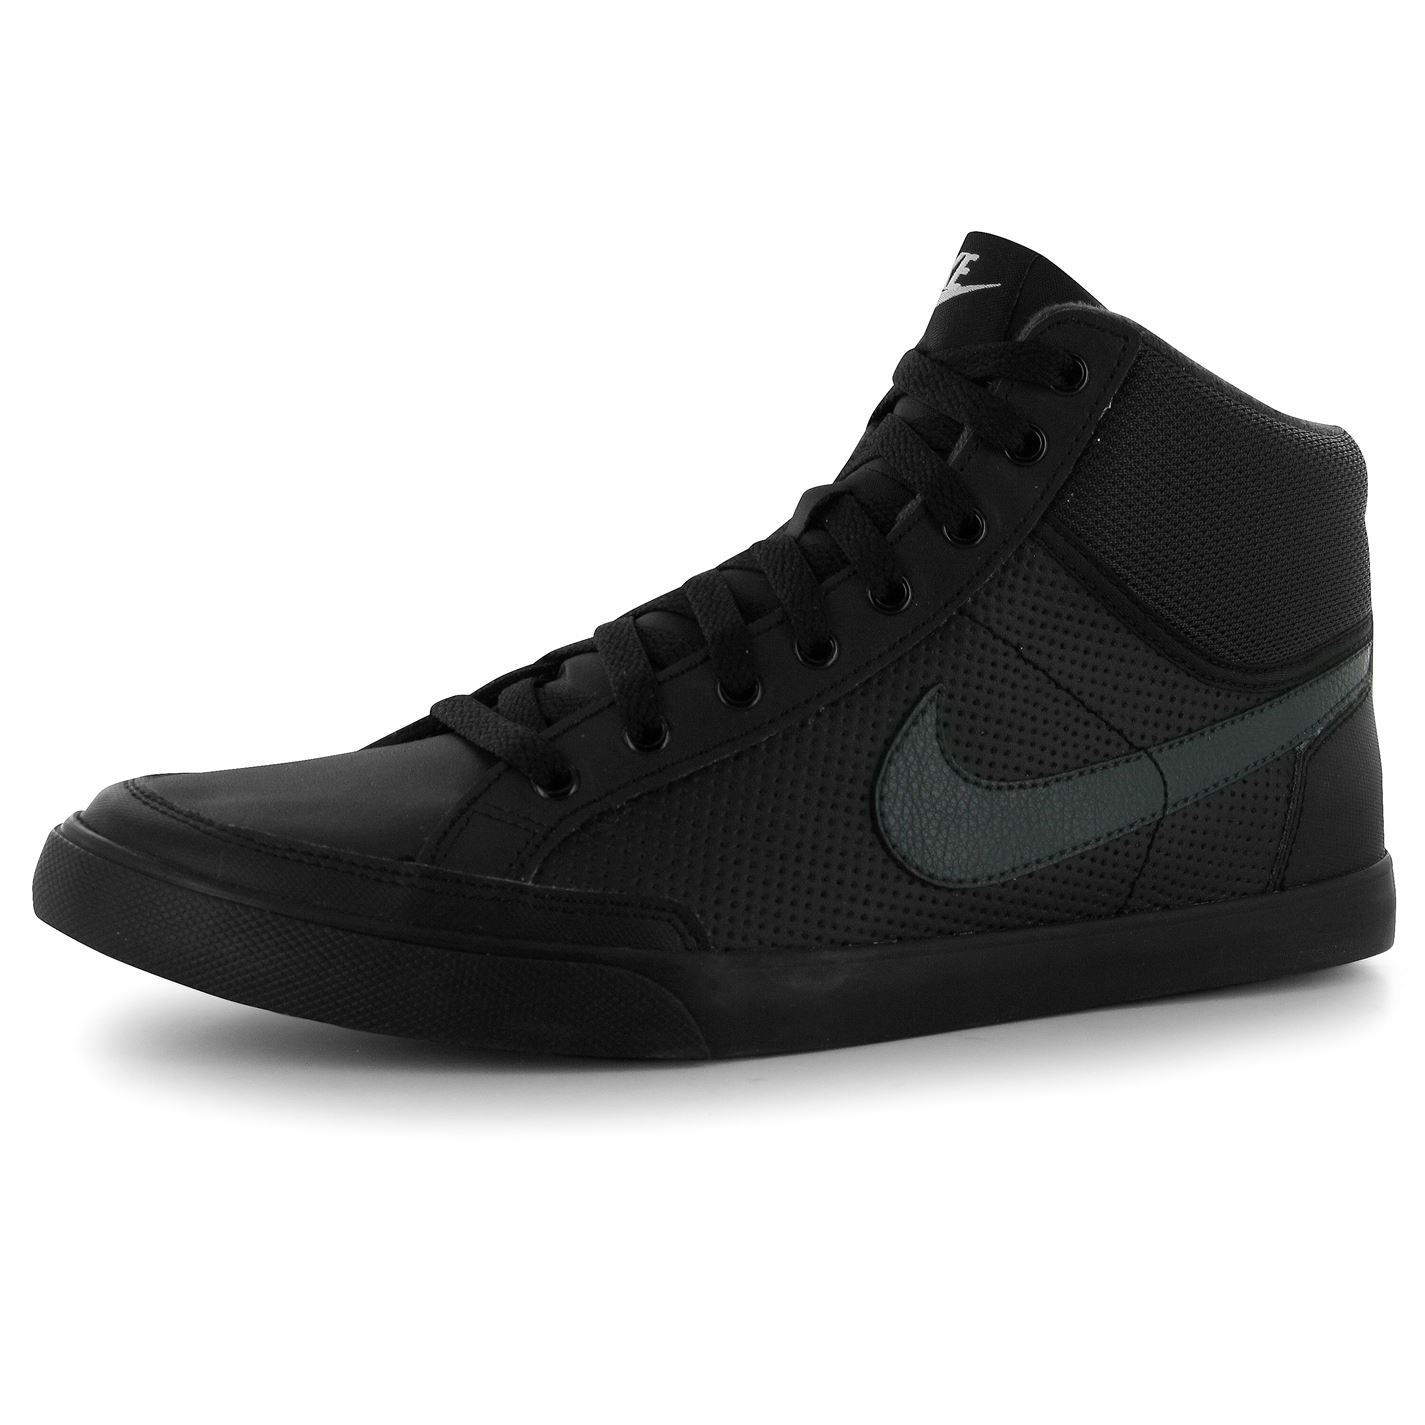 nike 3 leather mens mid top shoes trainers blk gry